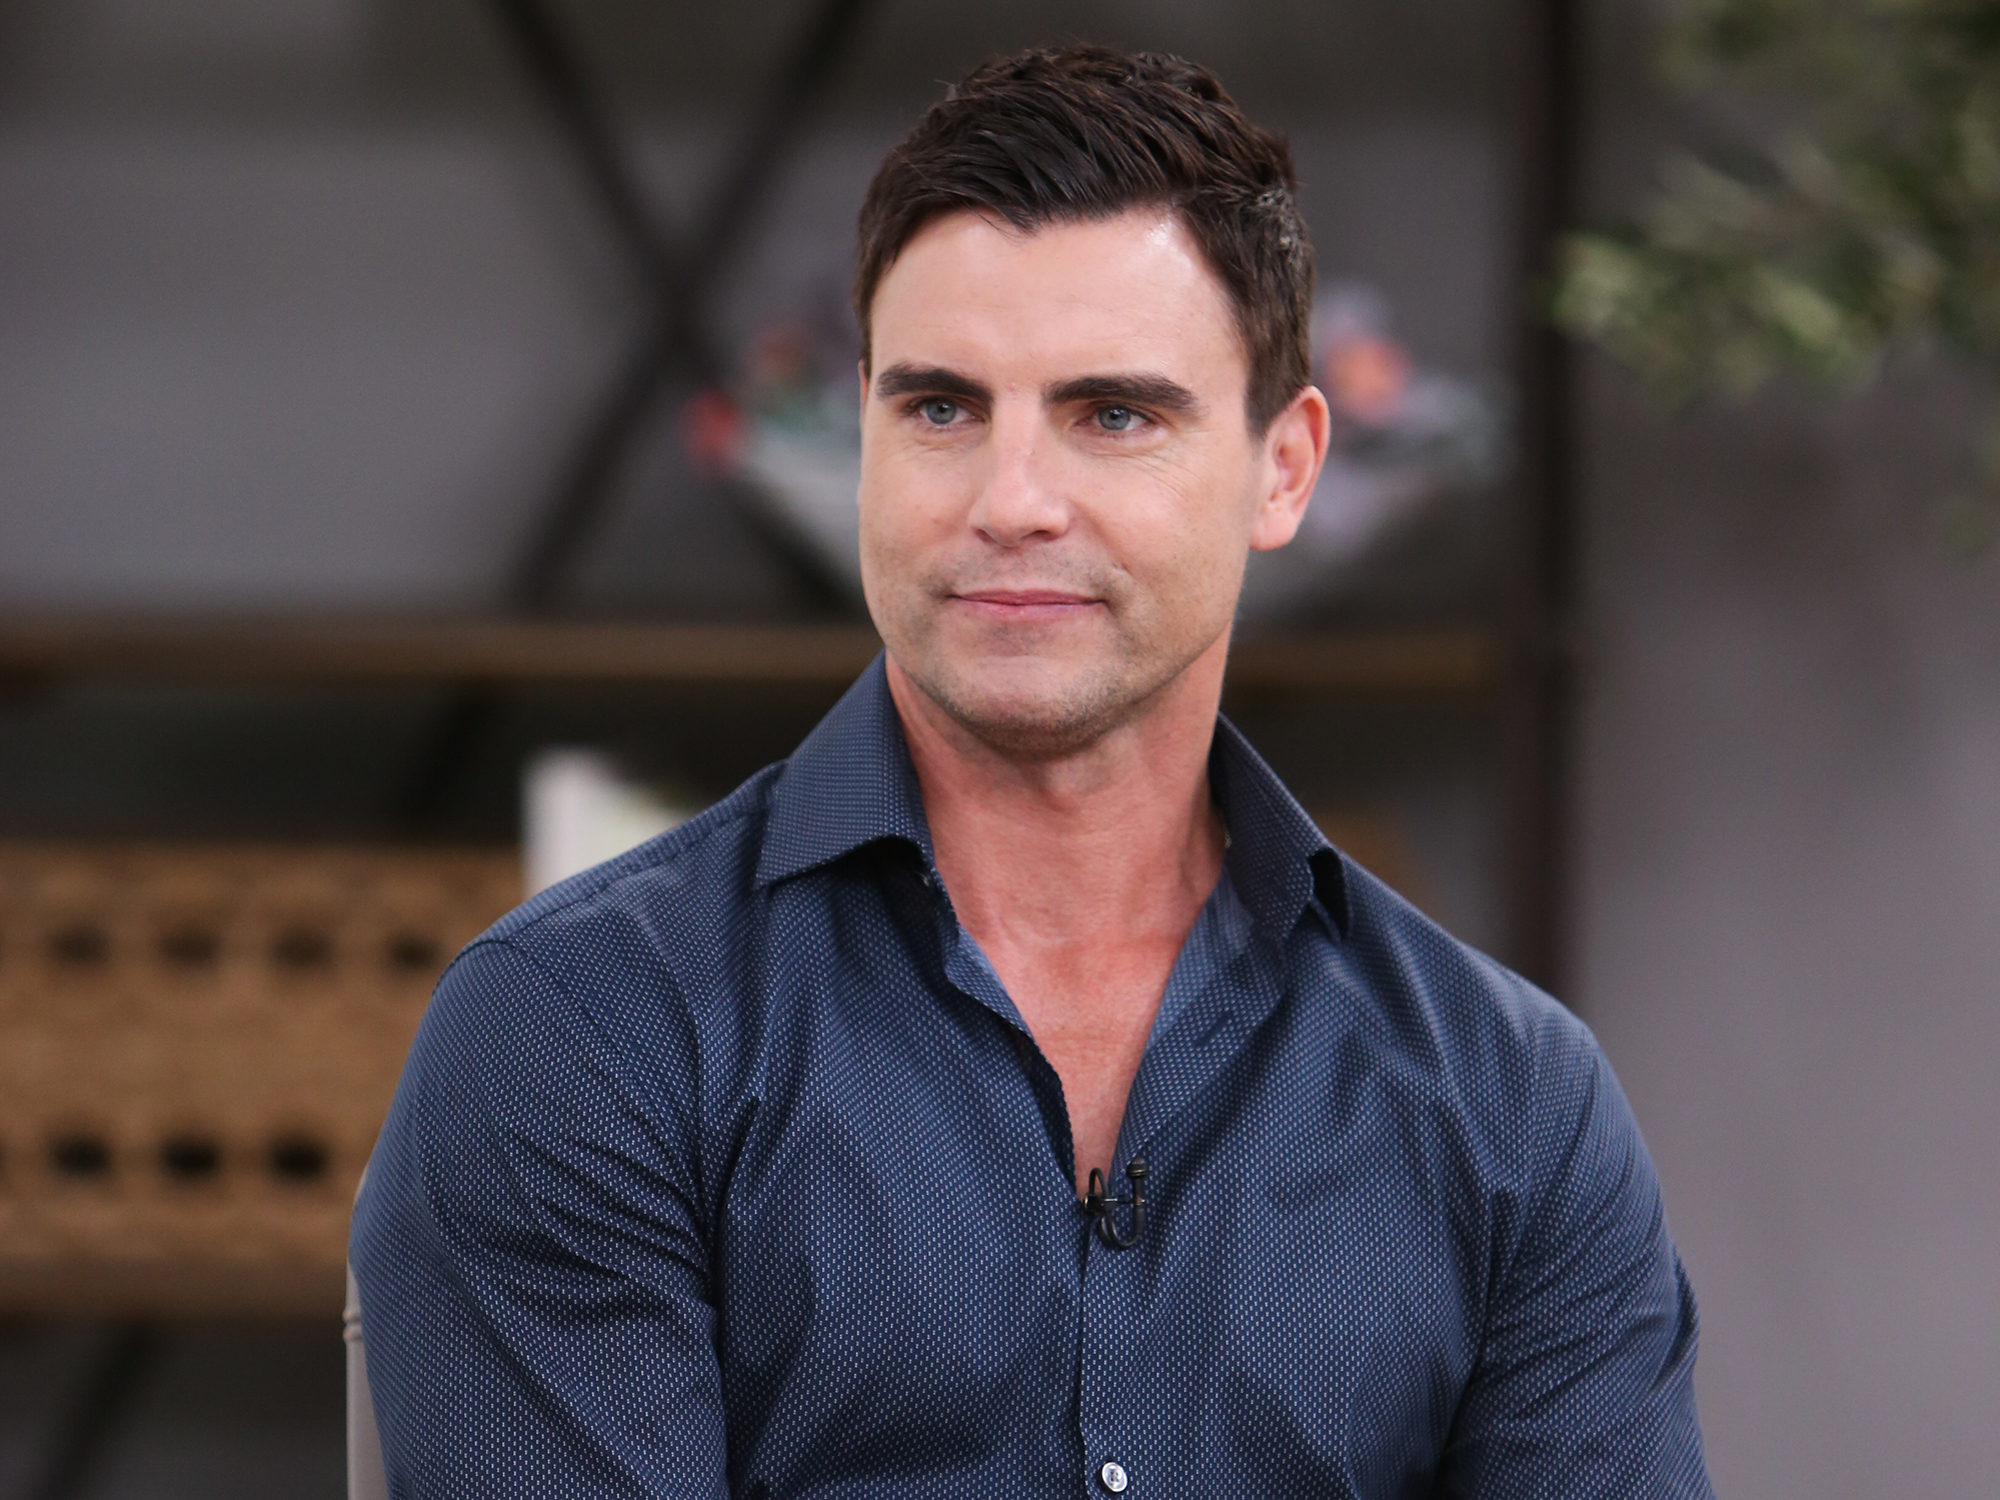 Colin Egglesfield Thought Cancer Diagnosis Could Be The End